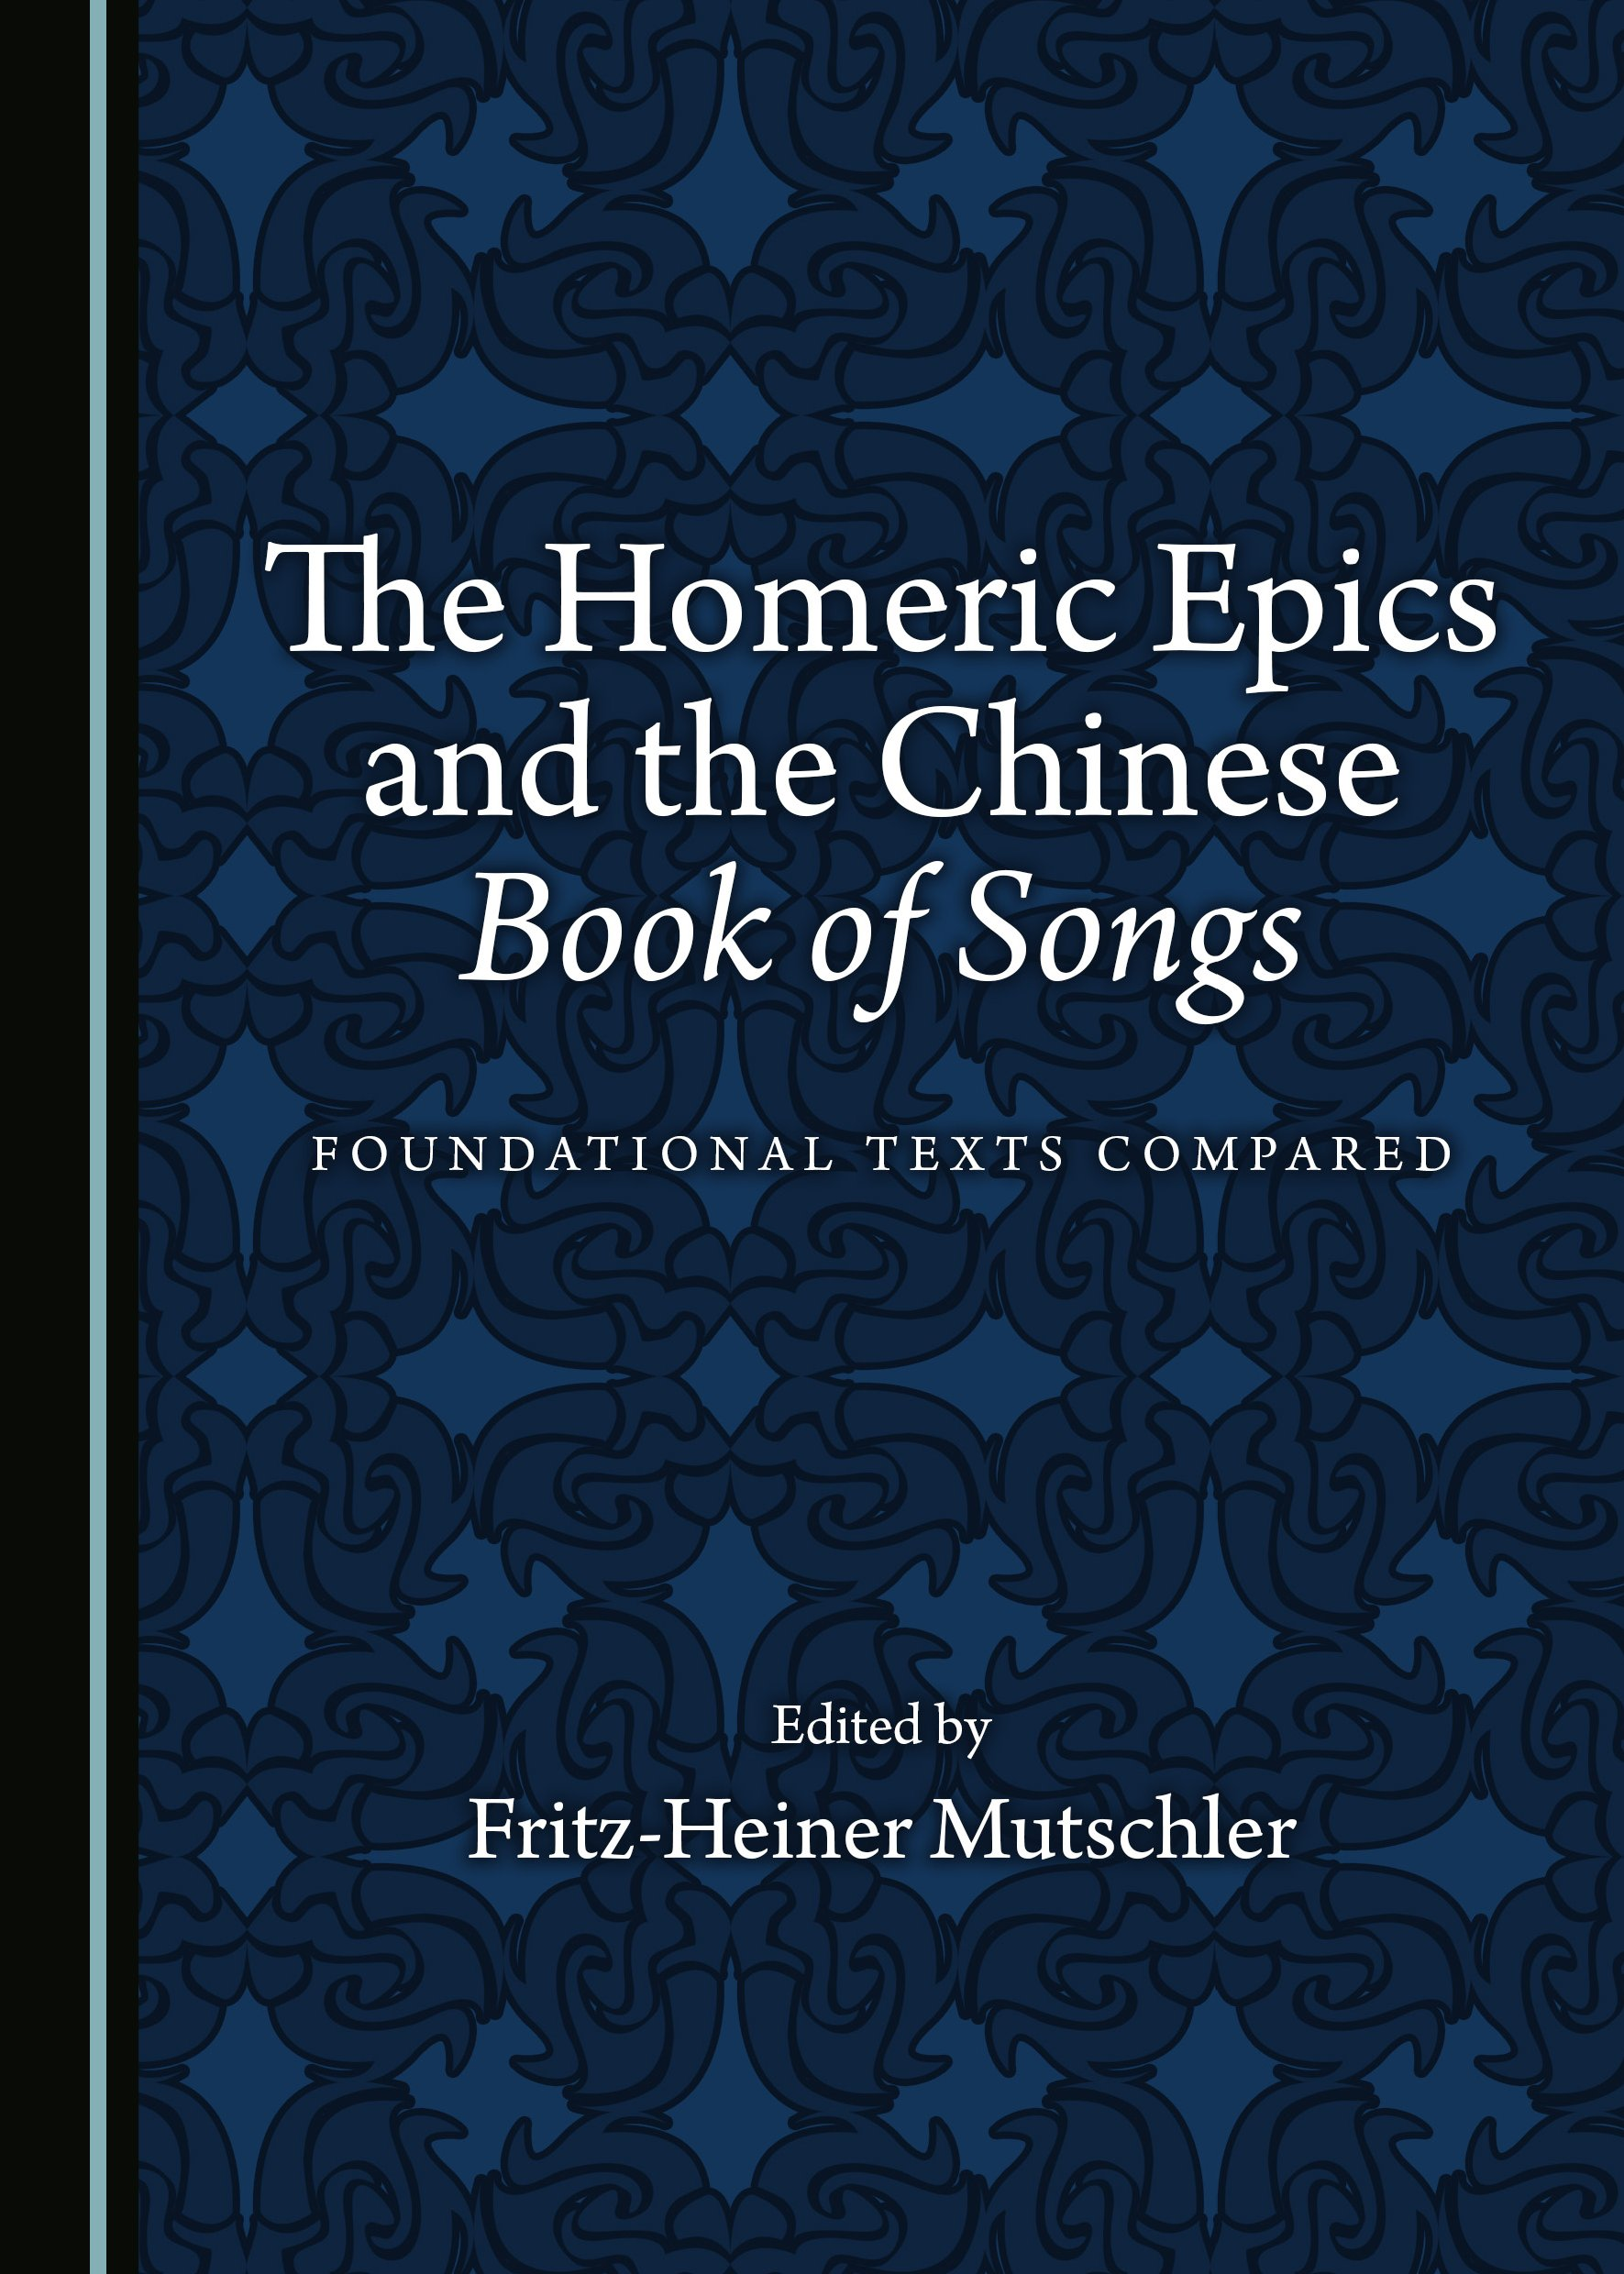 The Homeric Epics and the Chinese Book of Songs: Foundational Texts Compared